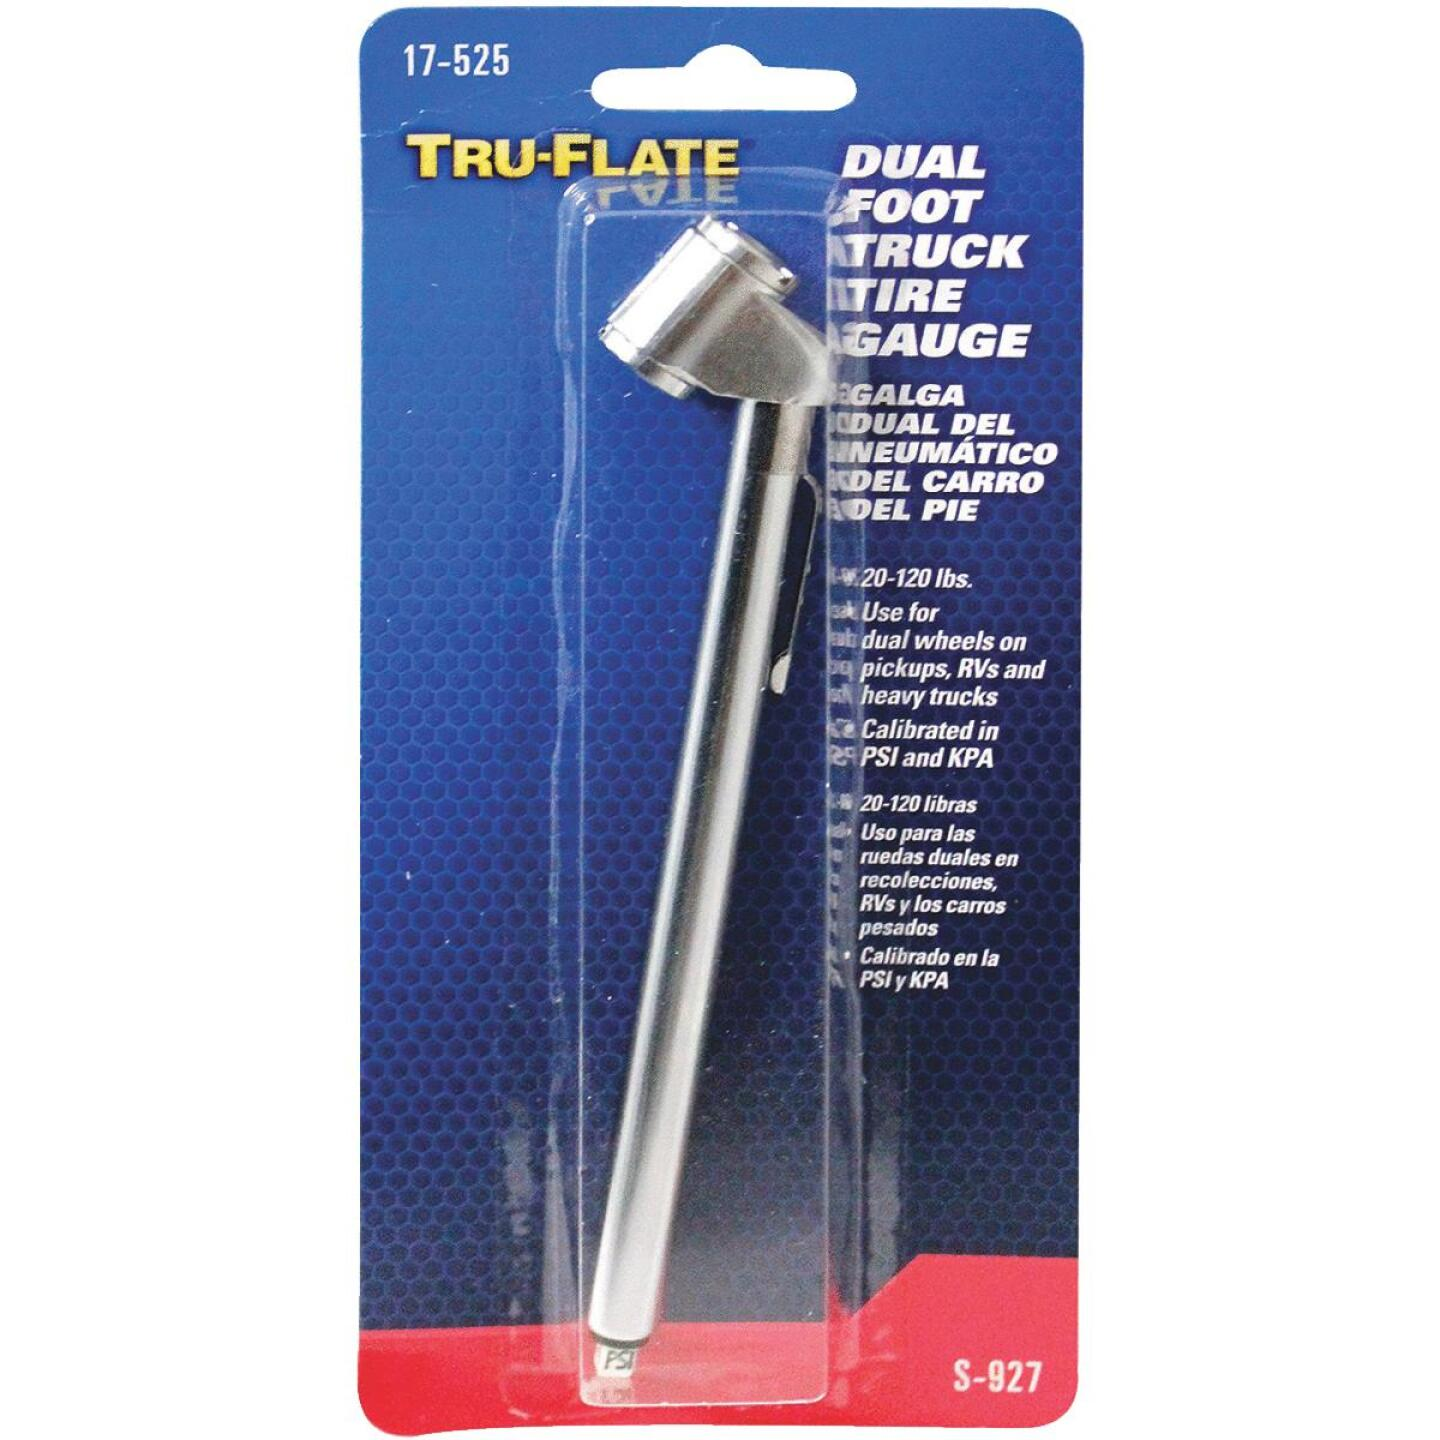 Tru-Flate 10-160 psi Chrome-Plated Tire Gauge Image 2